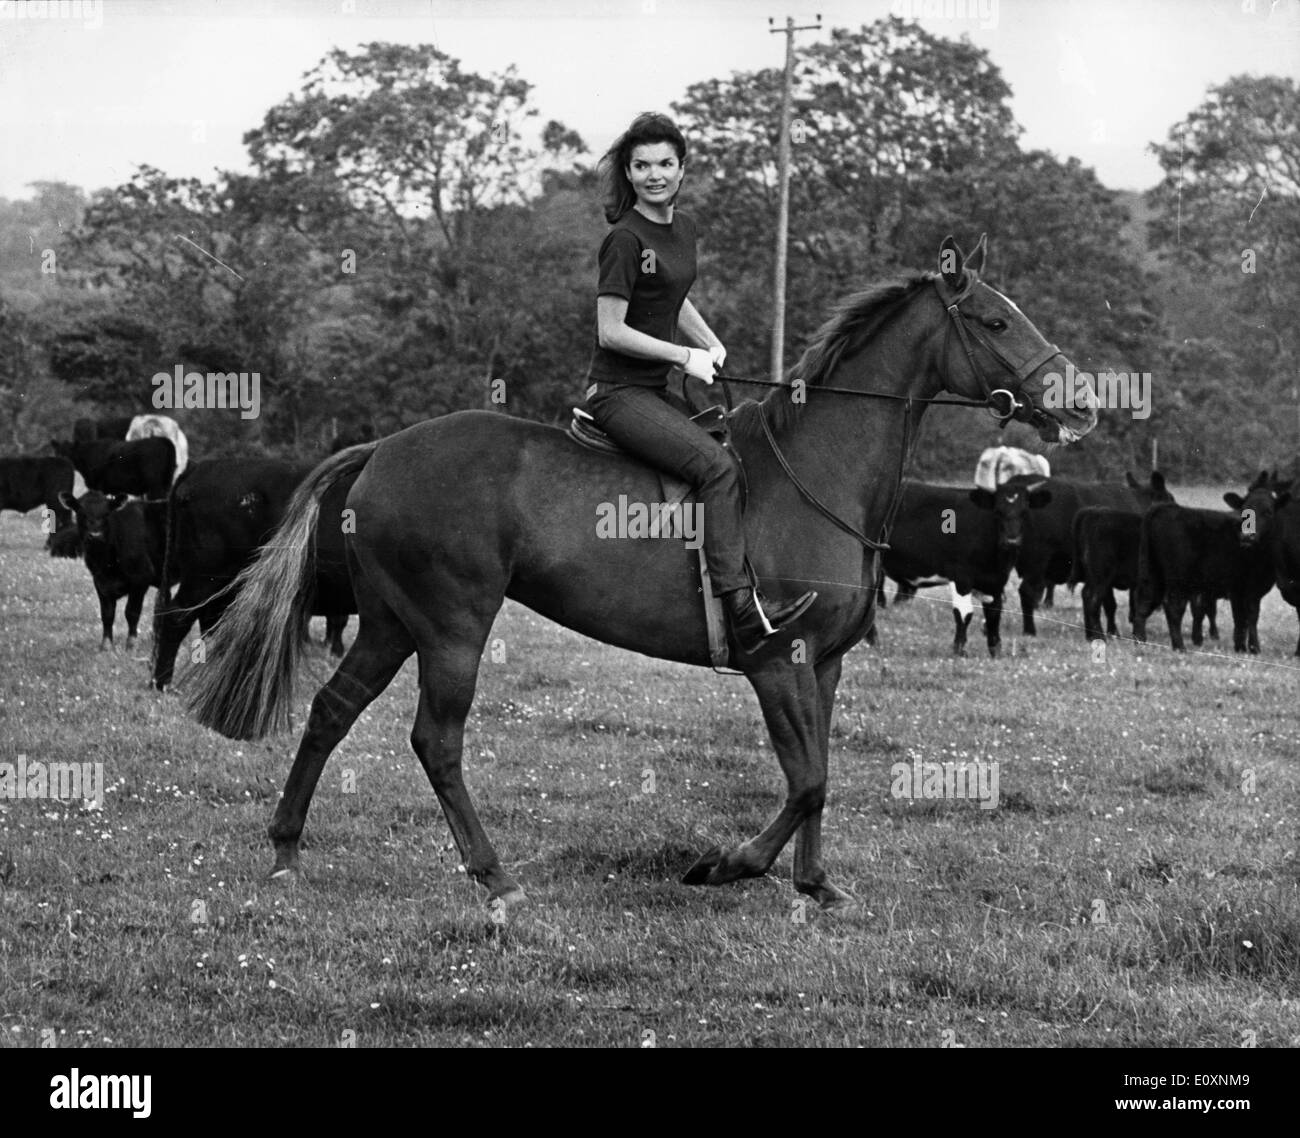 Jacqueline Kennedy horseback riding in the country - Stock Image